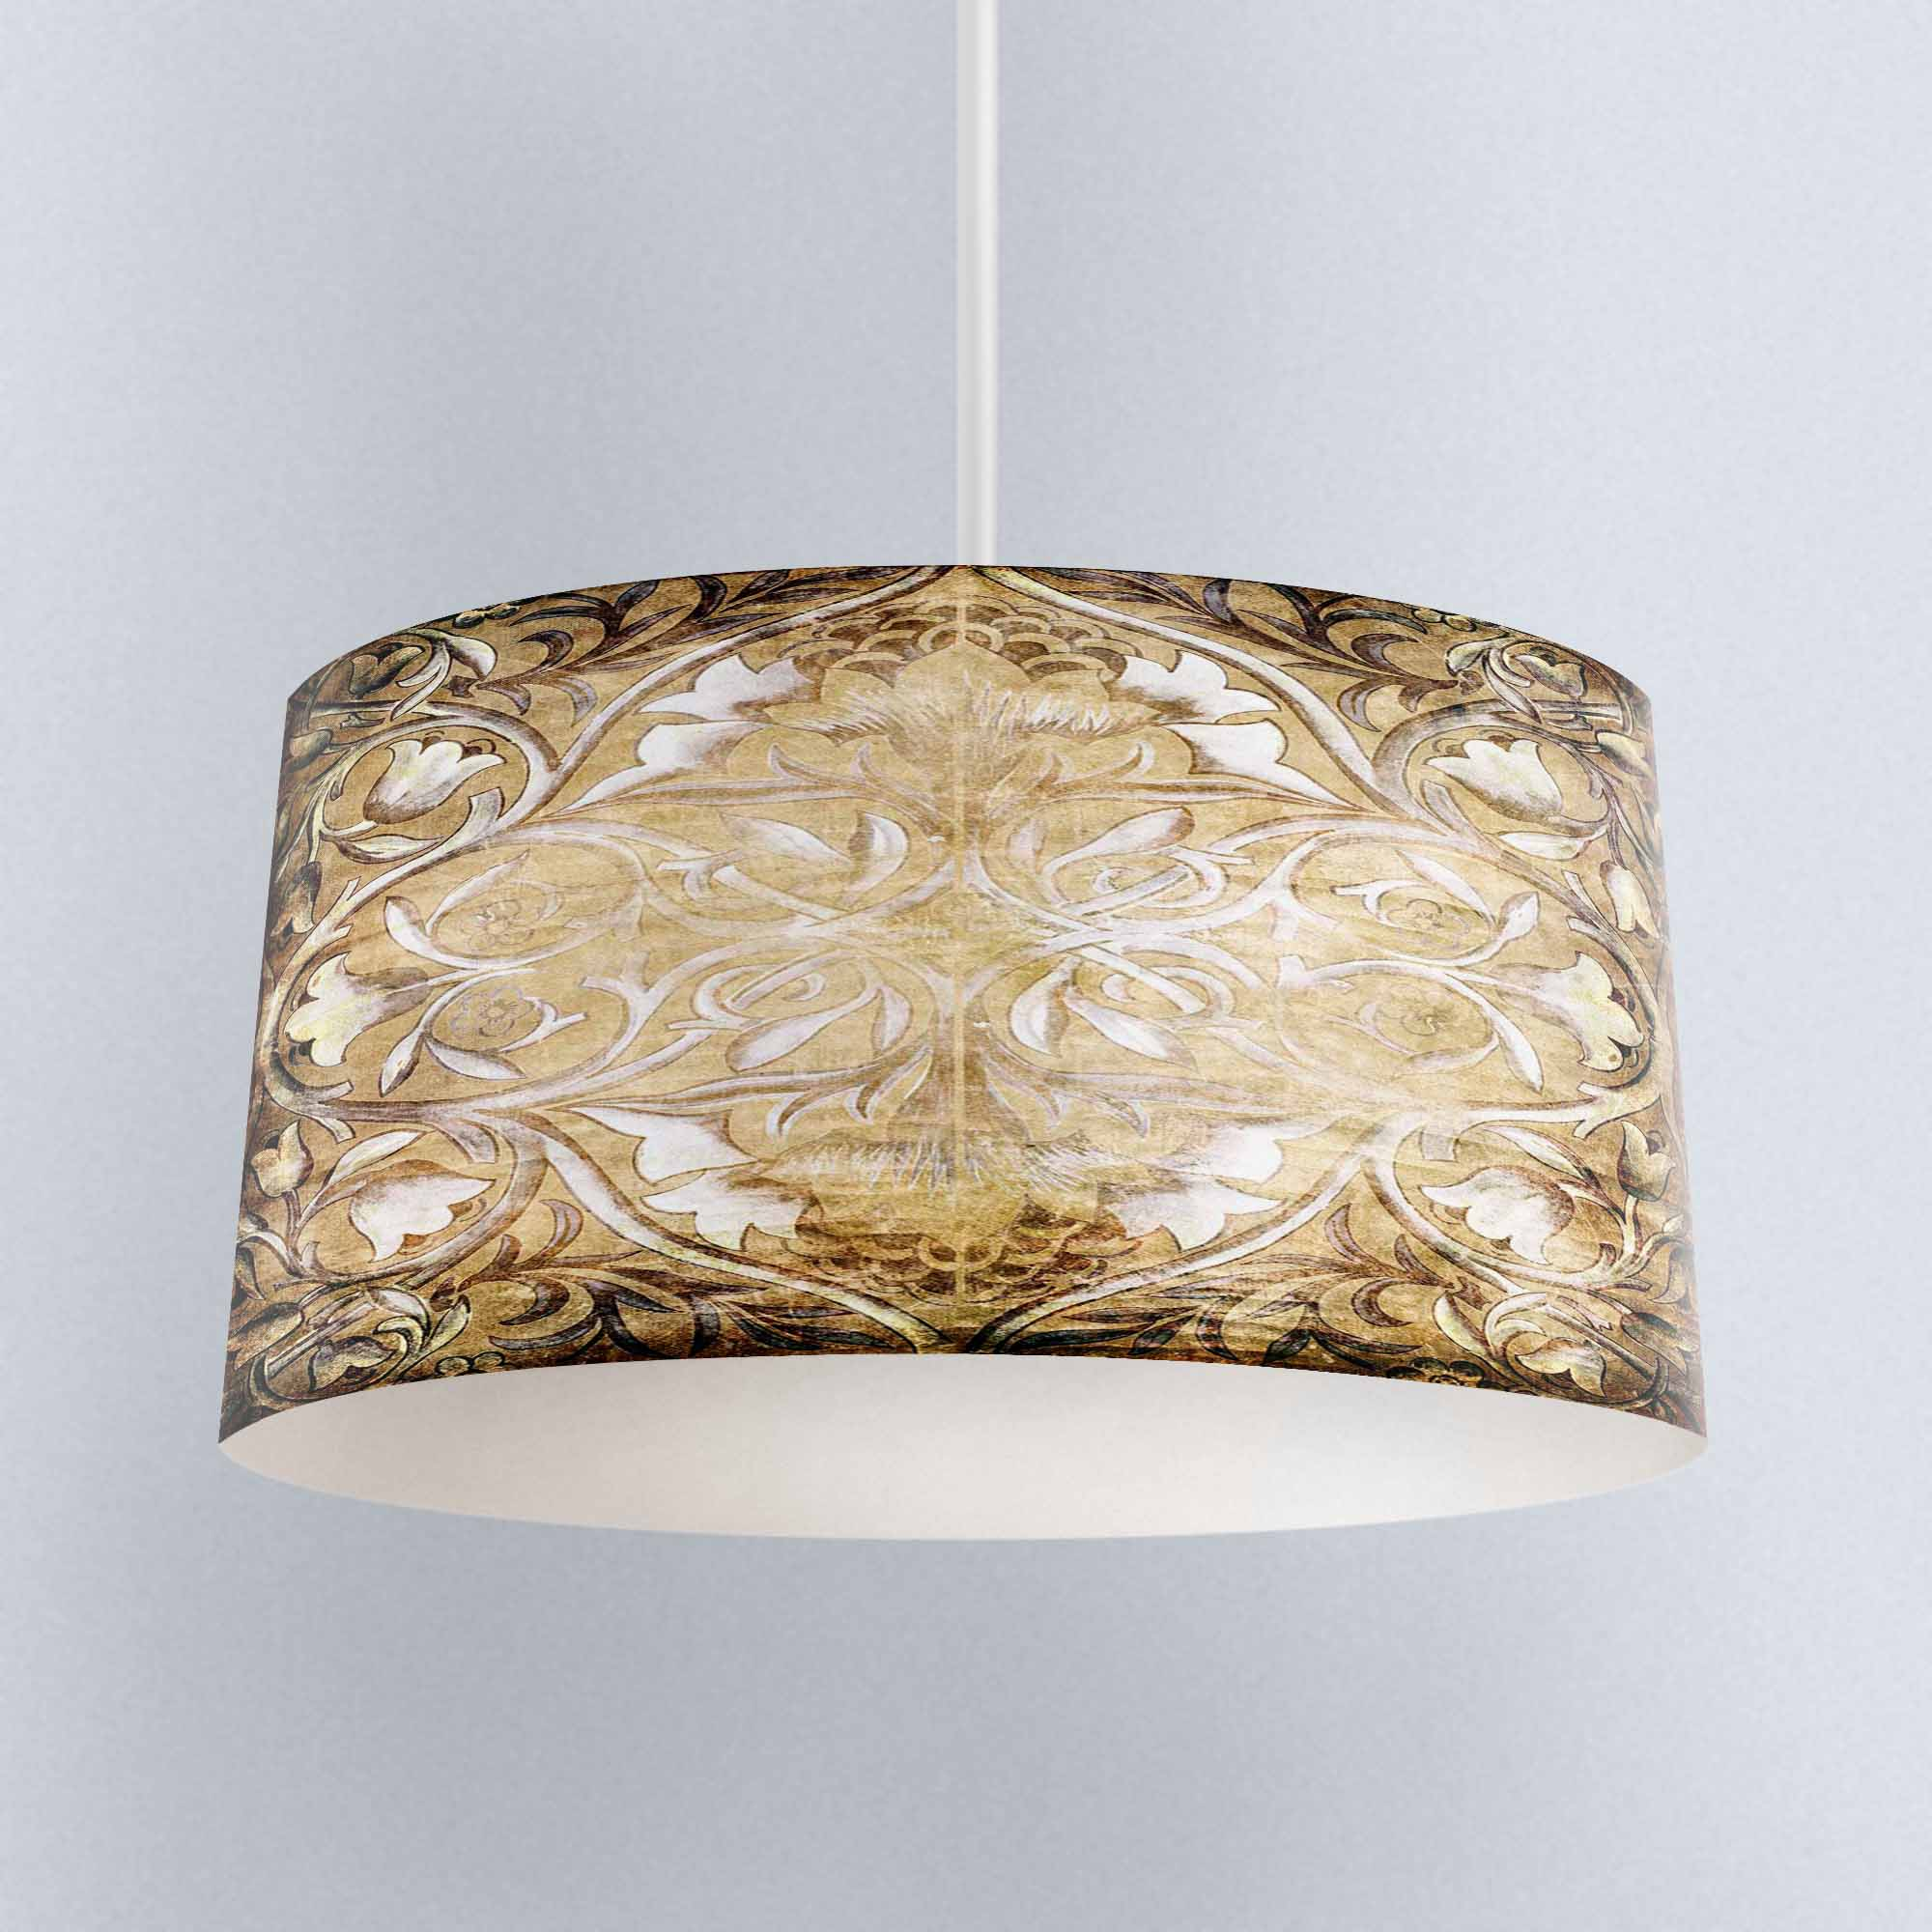 Else Yellow Brown Ottoman Ethnic Floral Digital Printed Fabric Chandelier Lamp Drum Lampshade Floor Ceiling Pendant Light Shade